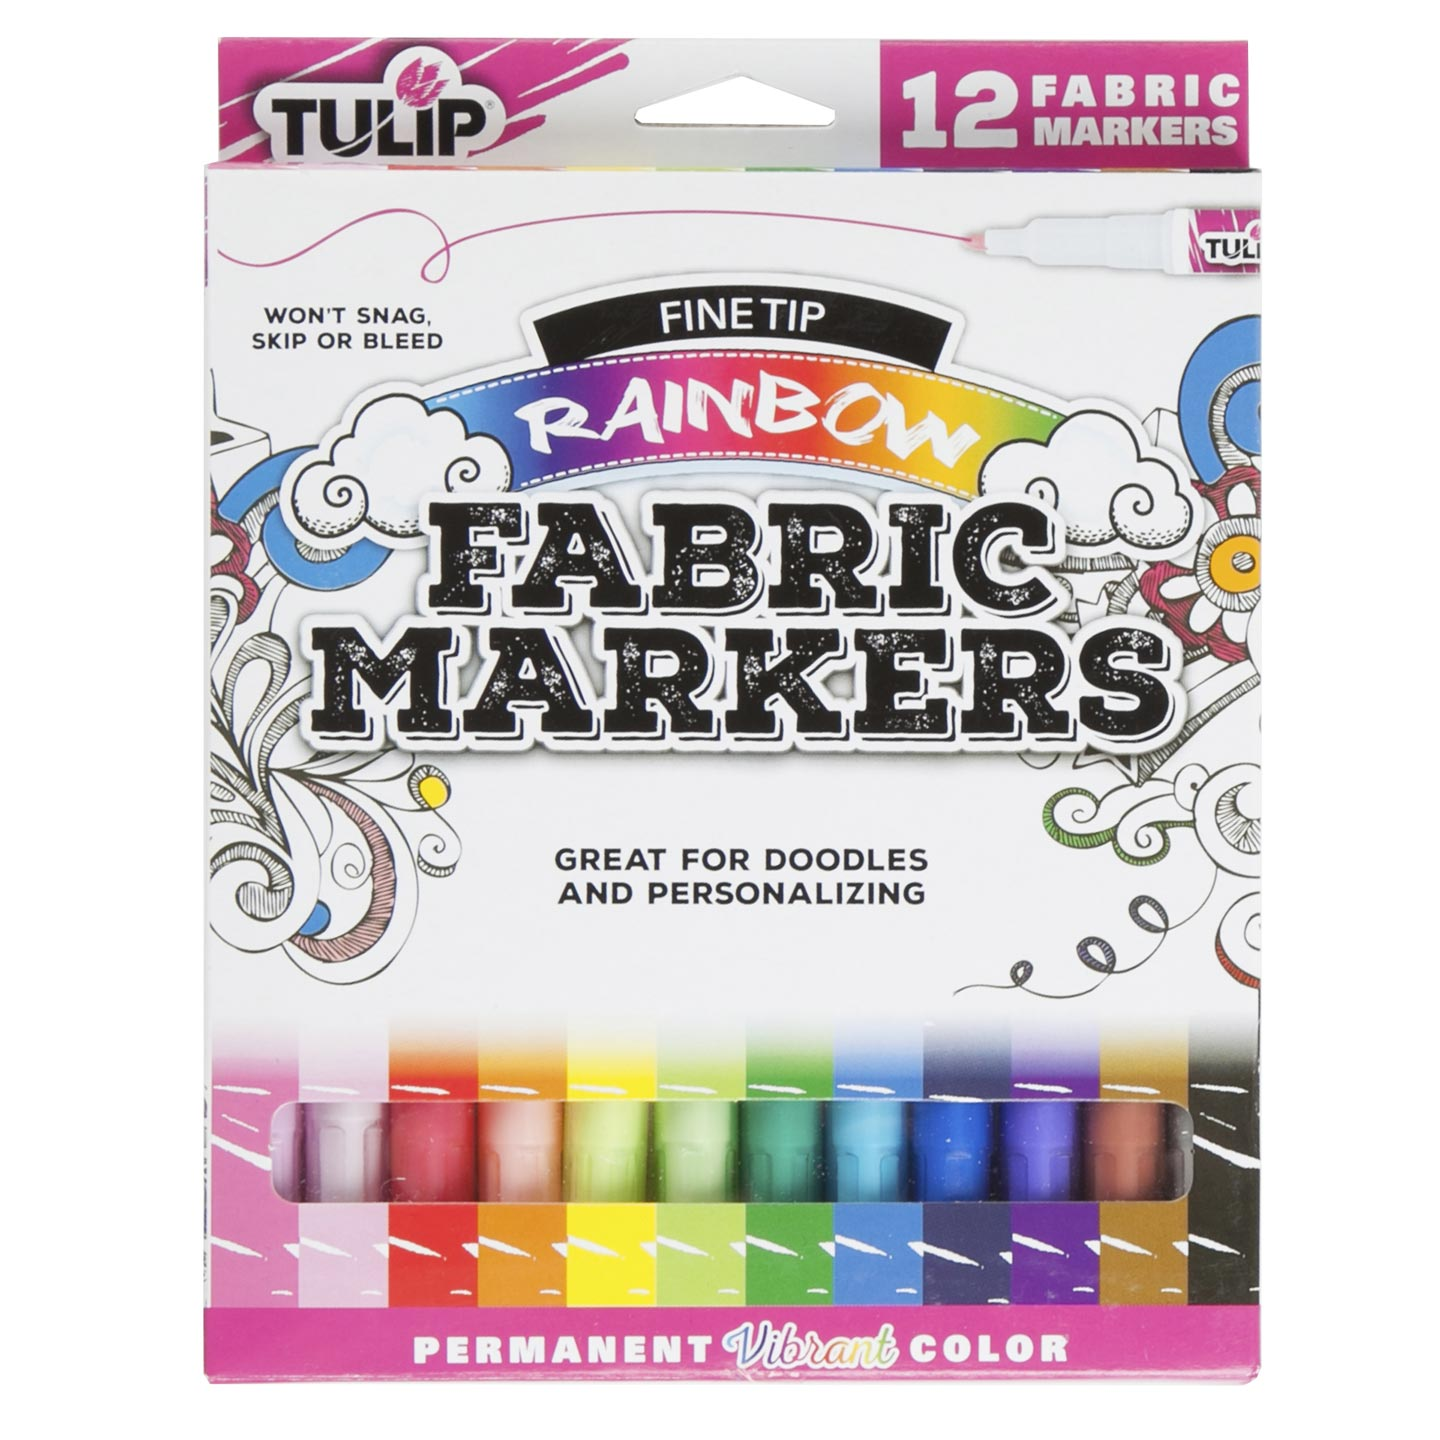 Tulip Fine Tip Fabric Markers: Rainbow, 12 pack